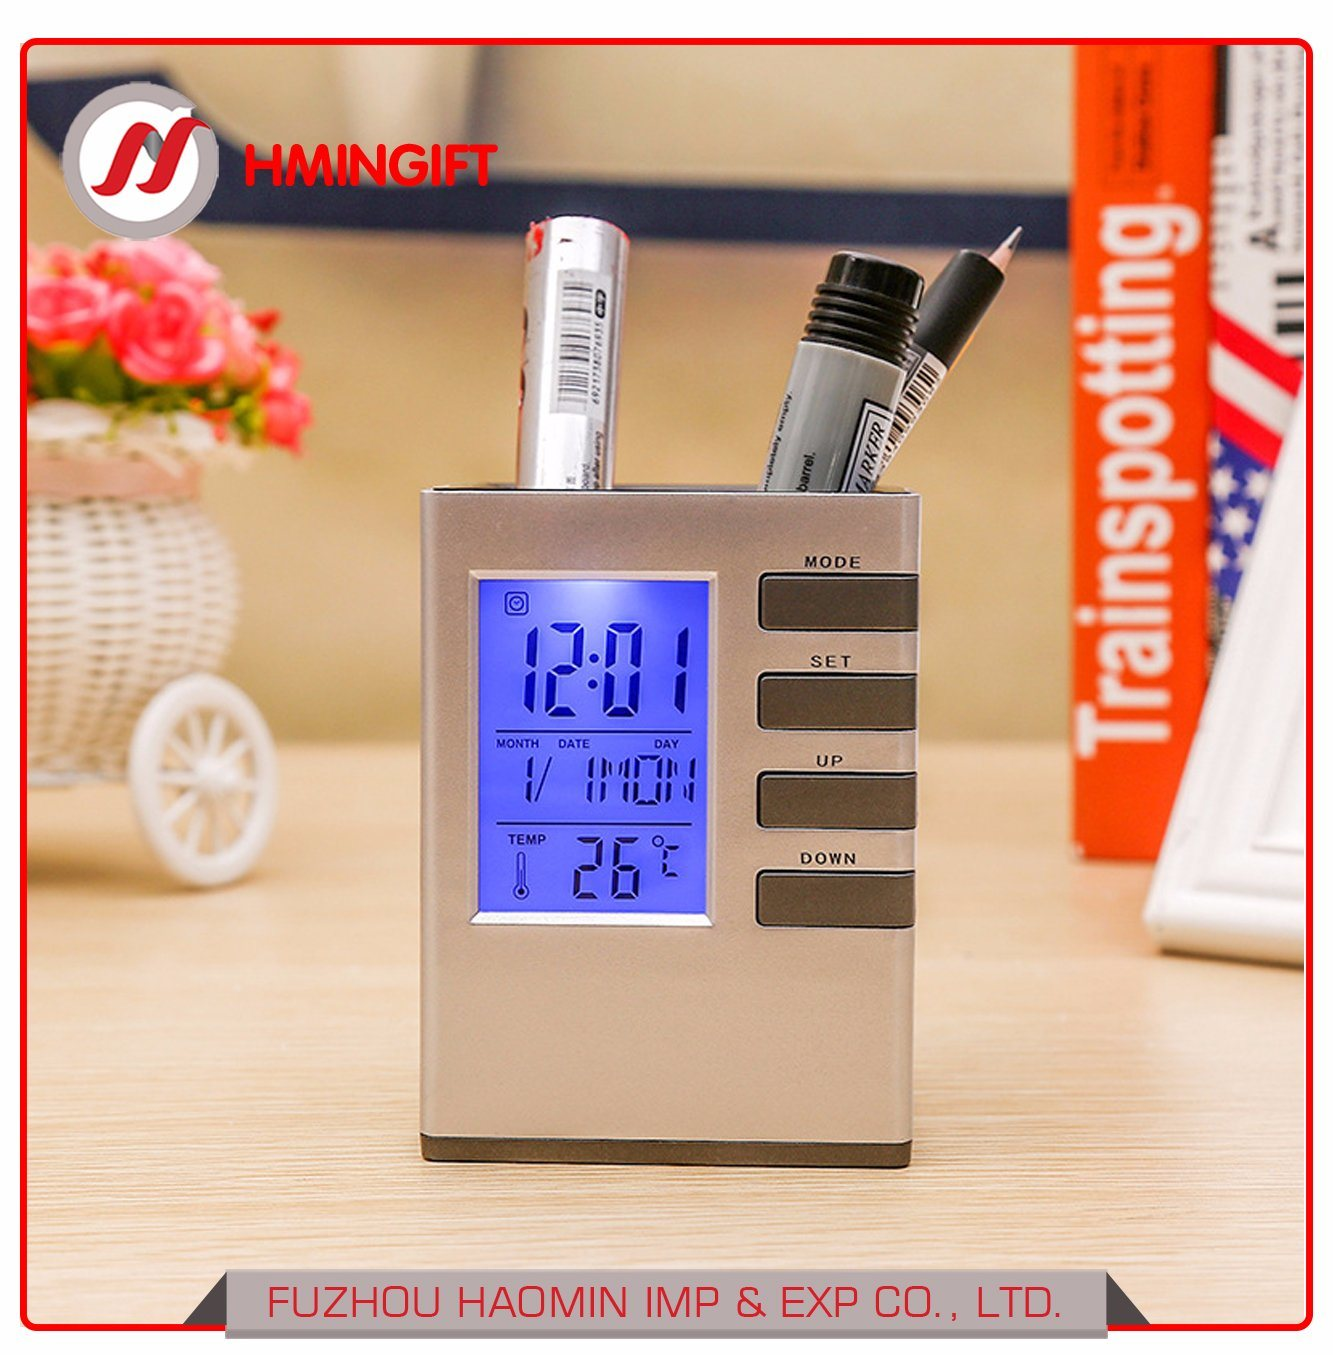 Wholesale Lcd Clock Buy Reliable From Digital Multifunction Temperature Humidity Meter With Alarm Date Week Calender Htc 2 Hygrometer Room Thermometer Large Screen Voice Control Backlight